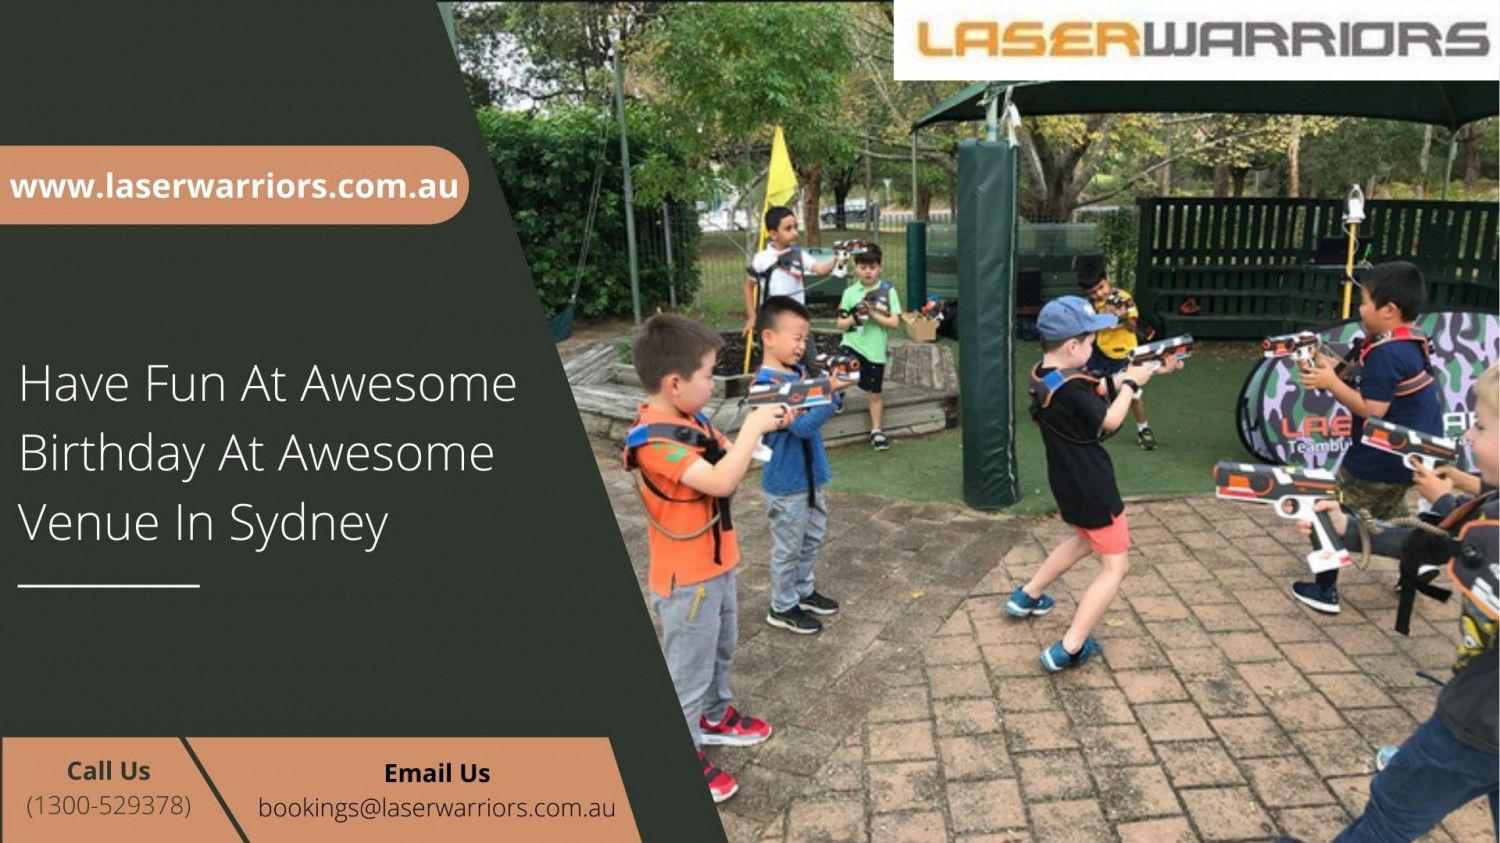 Have fun at awesome birthday at awesome venue in sydney in